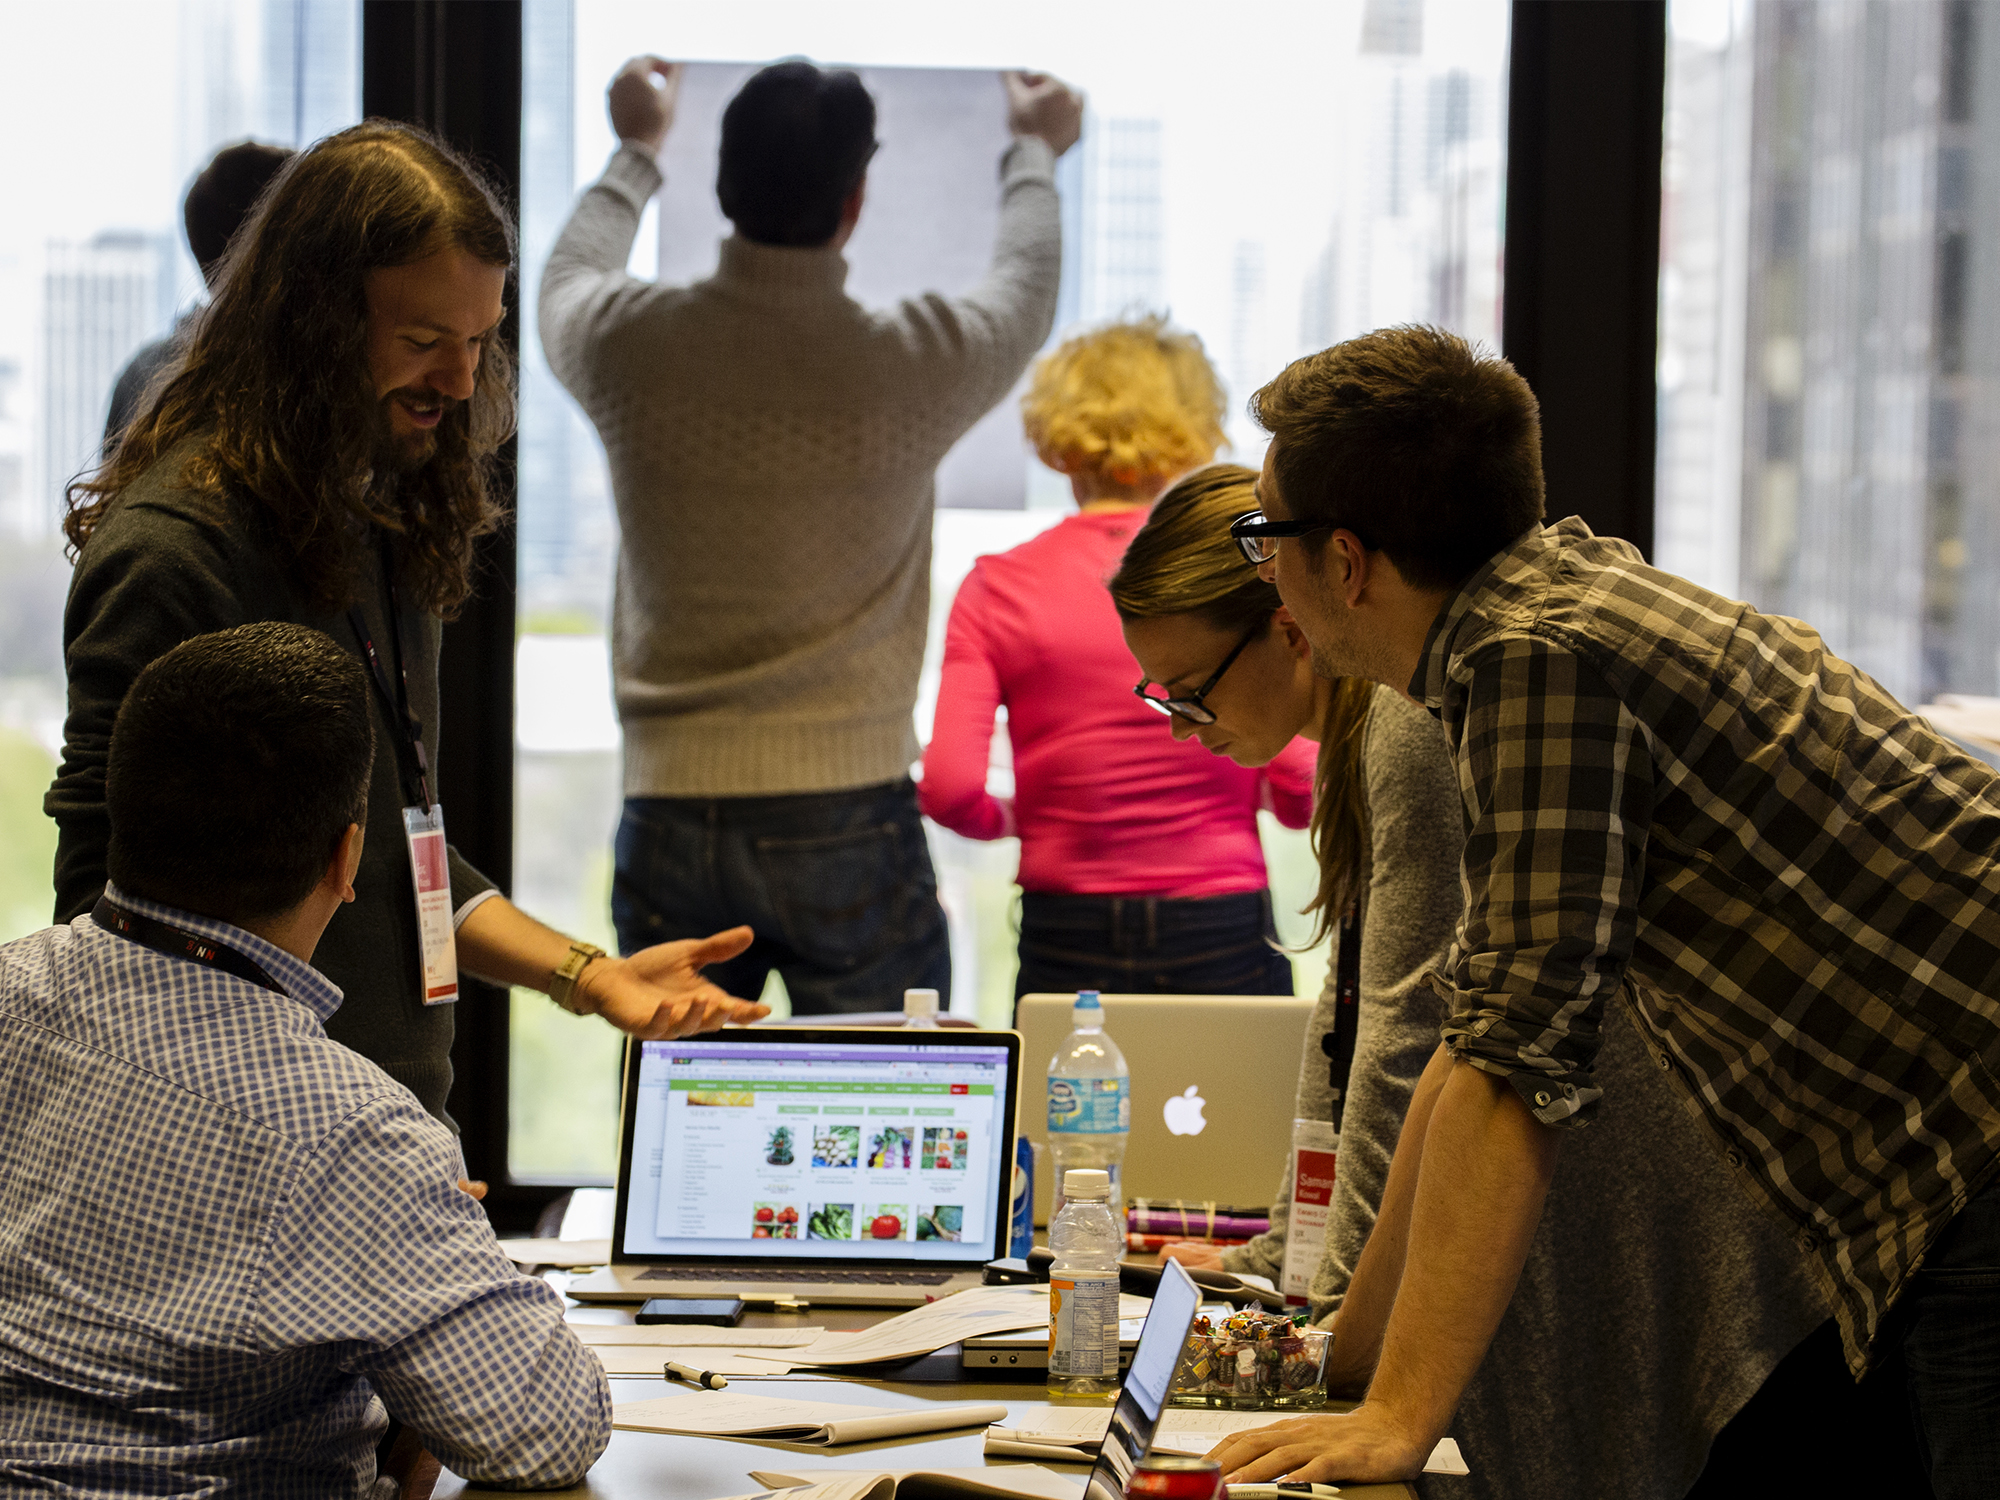 DesignOps: Scaling UX Design and User Research | Full Day UX training course by NN/g